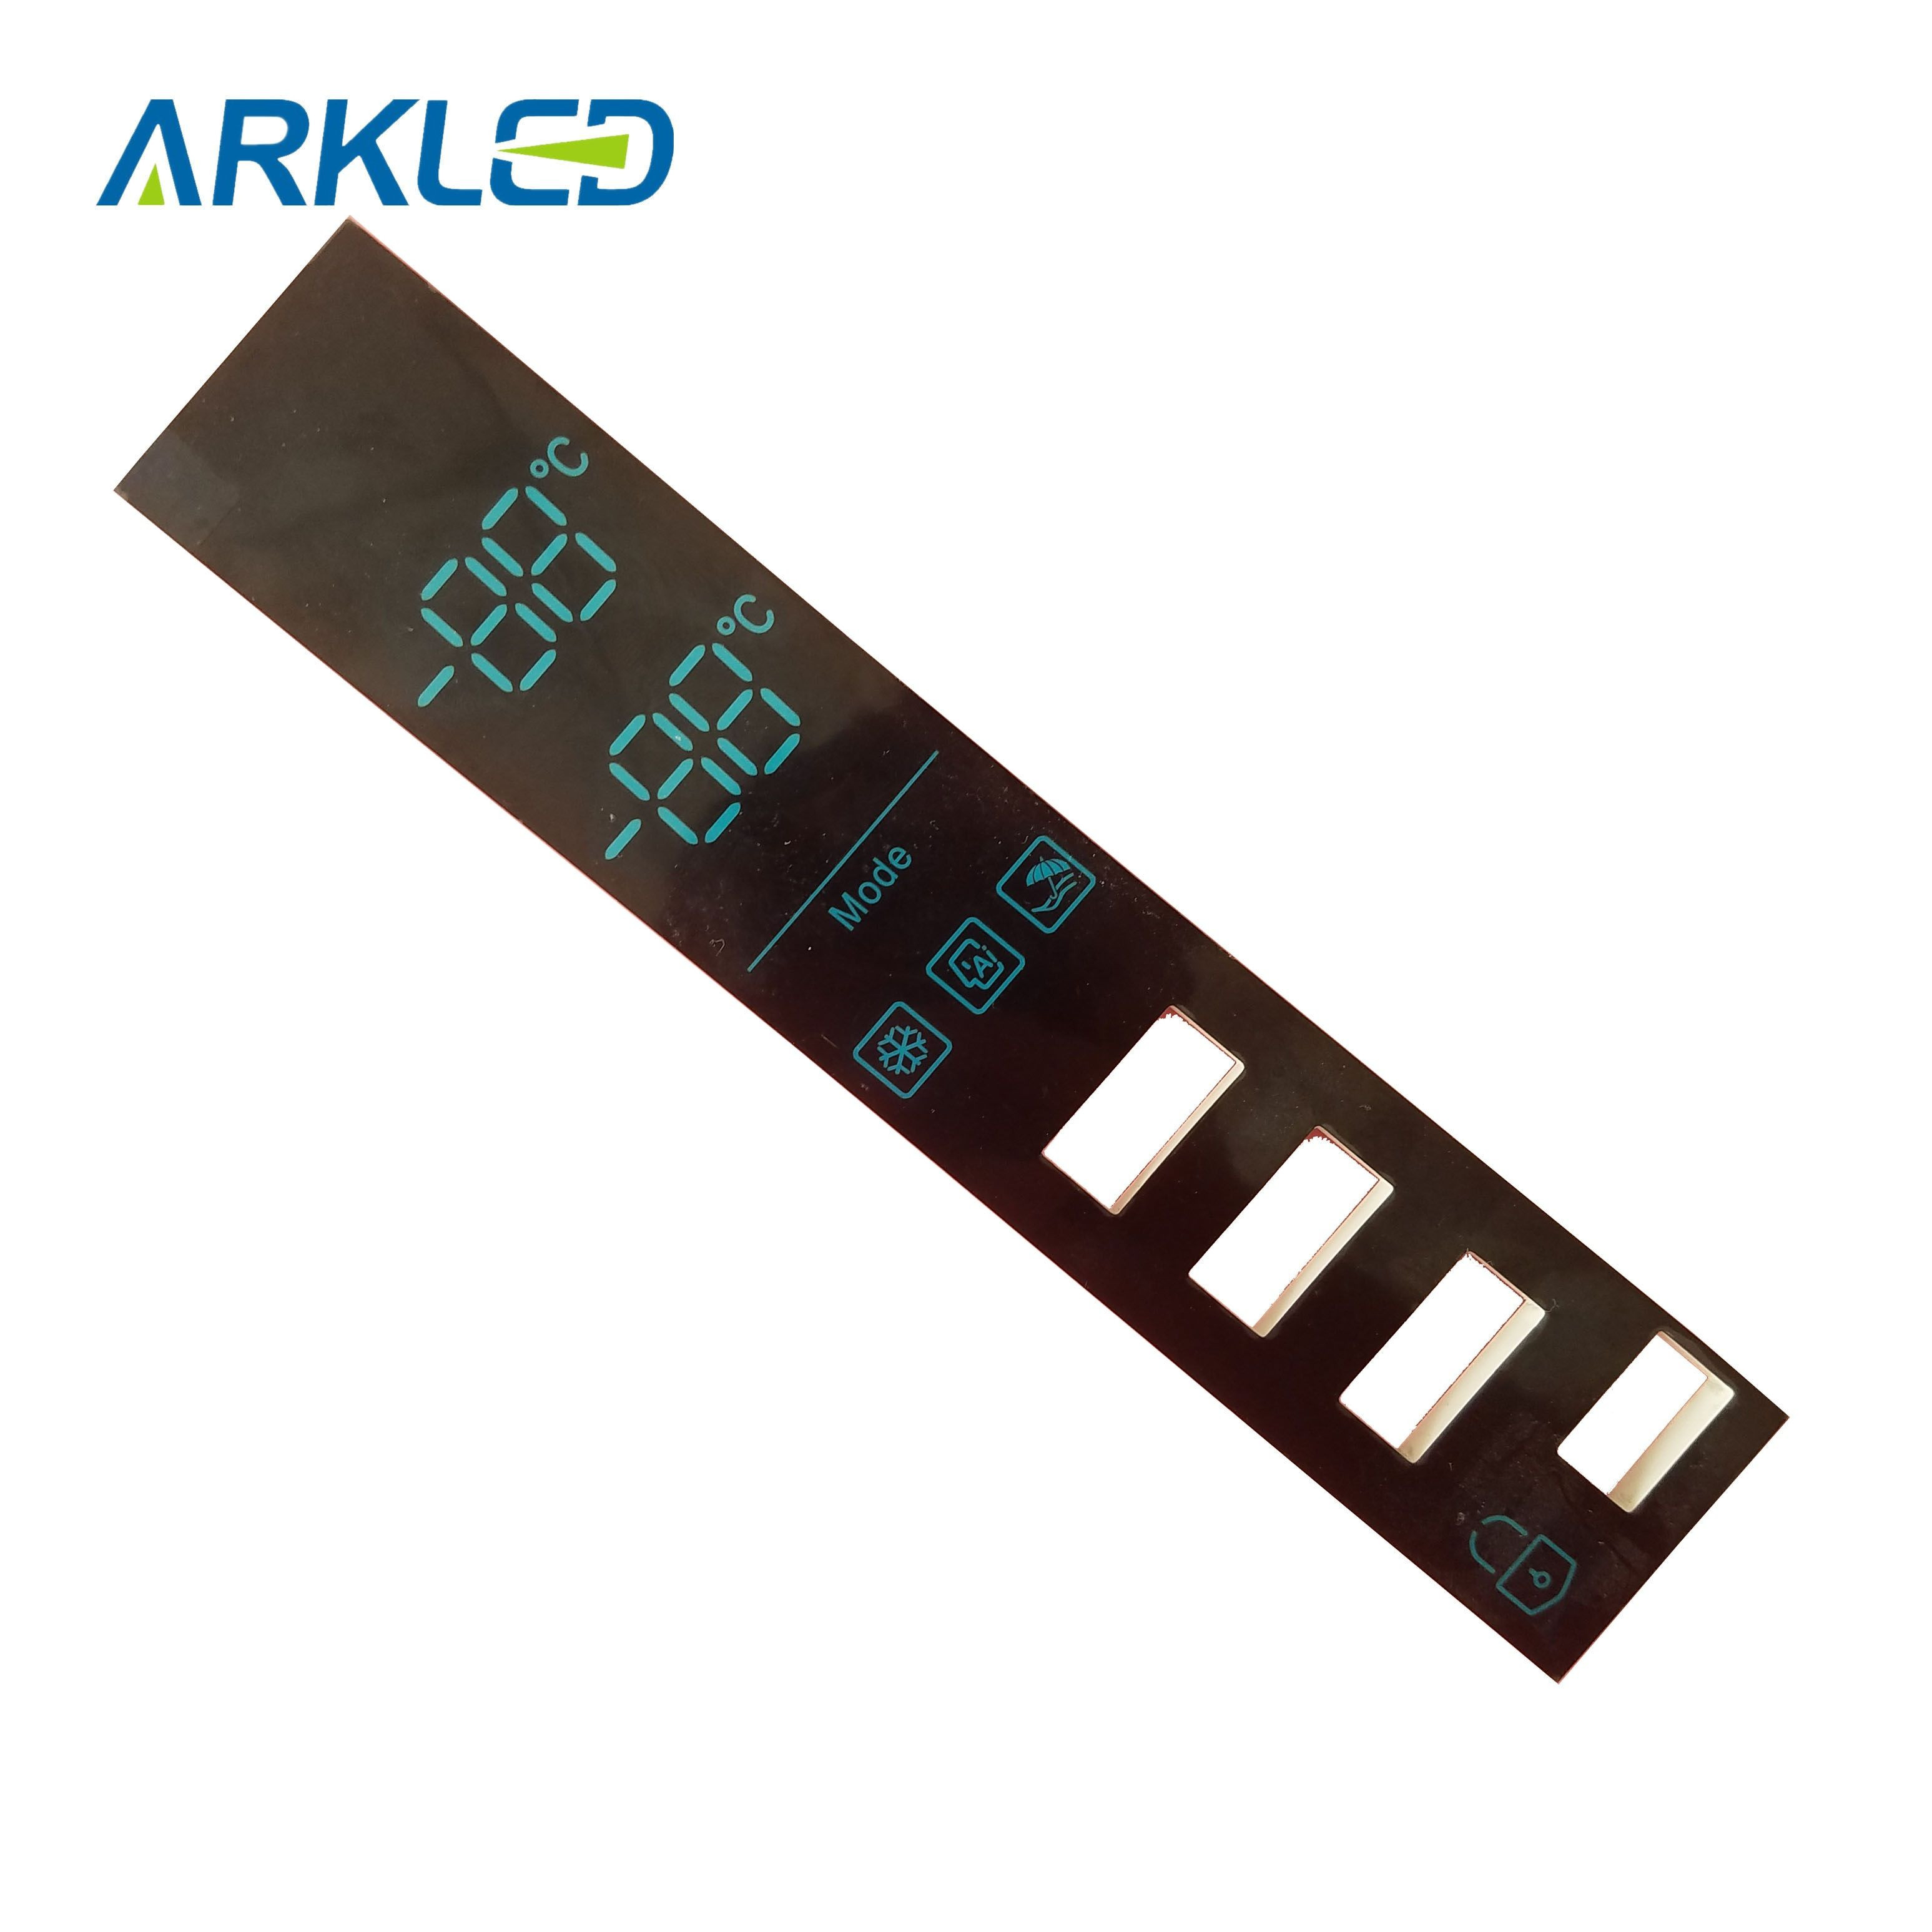 Customized led display with touch control from ARKLED